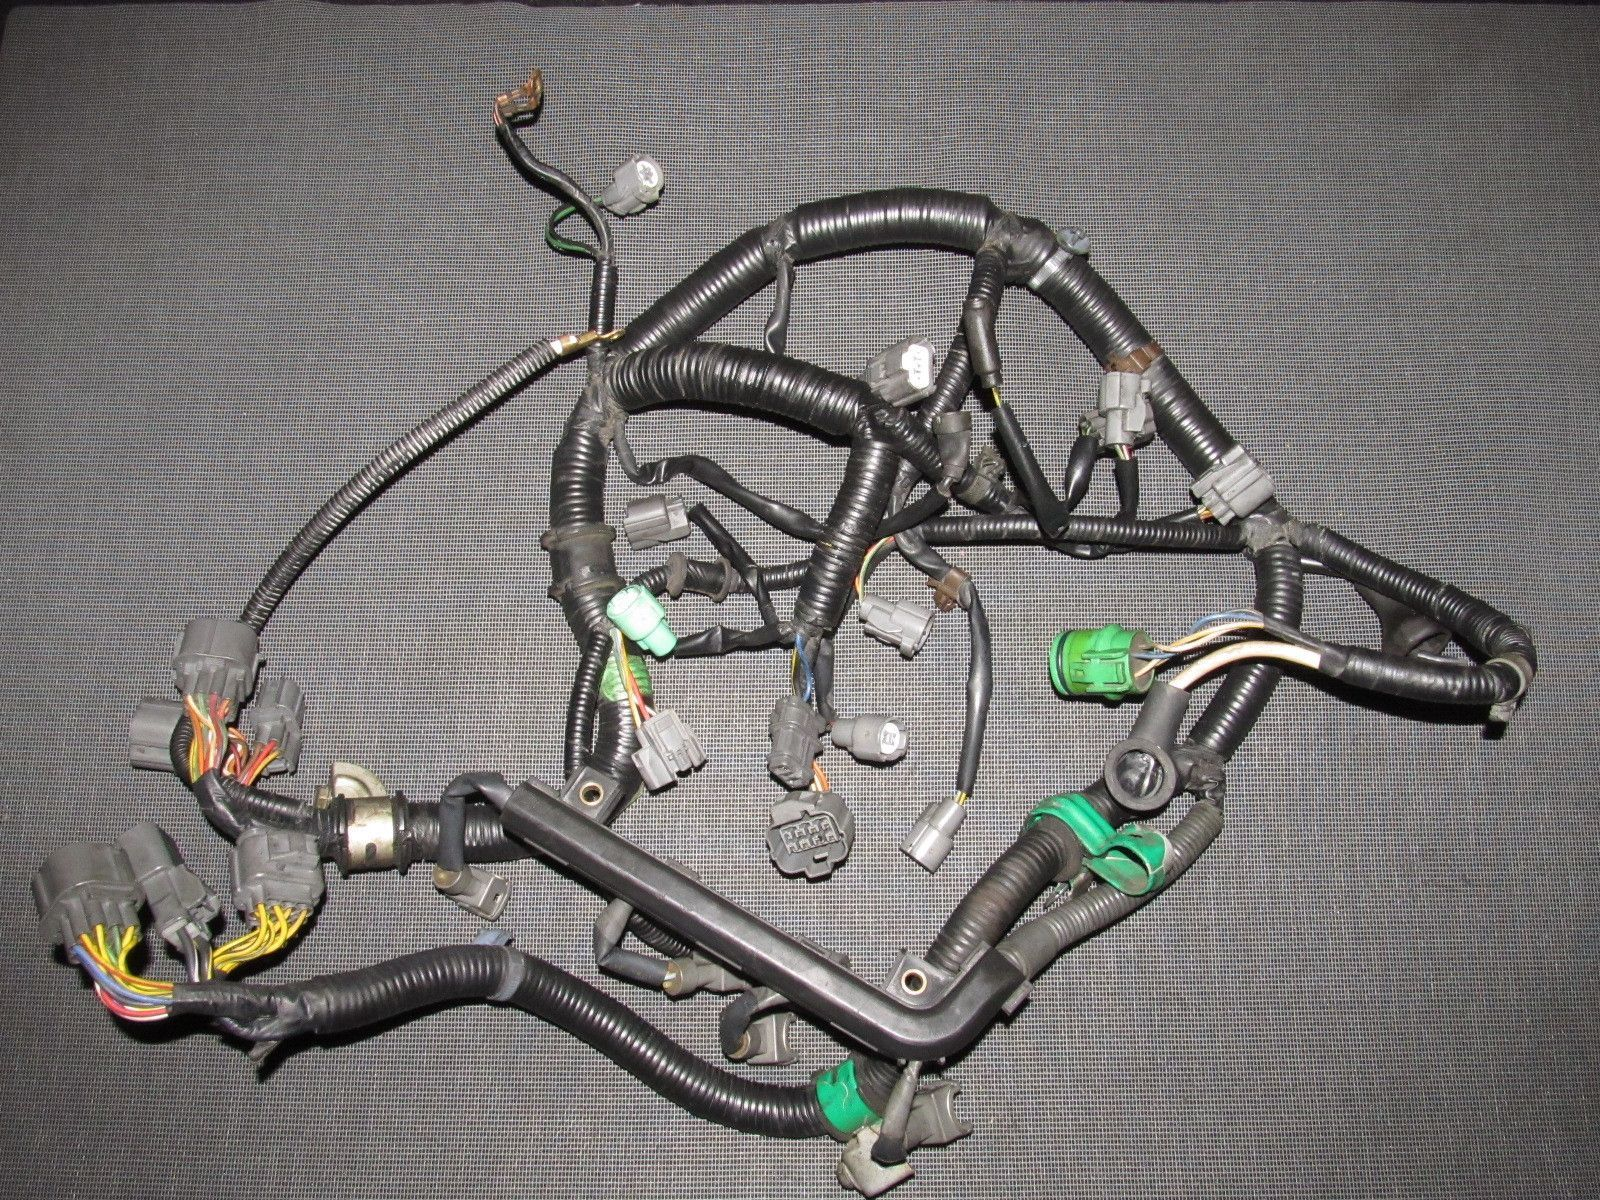 e13ed0b9adc09ceb92223cce2cd7bac5 93 94 95 honda del sol d16z6 auto transmission engine wiring d16z6 wiring harness at edmiracle.co